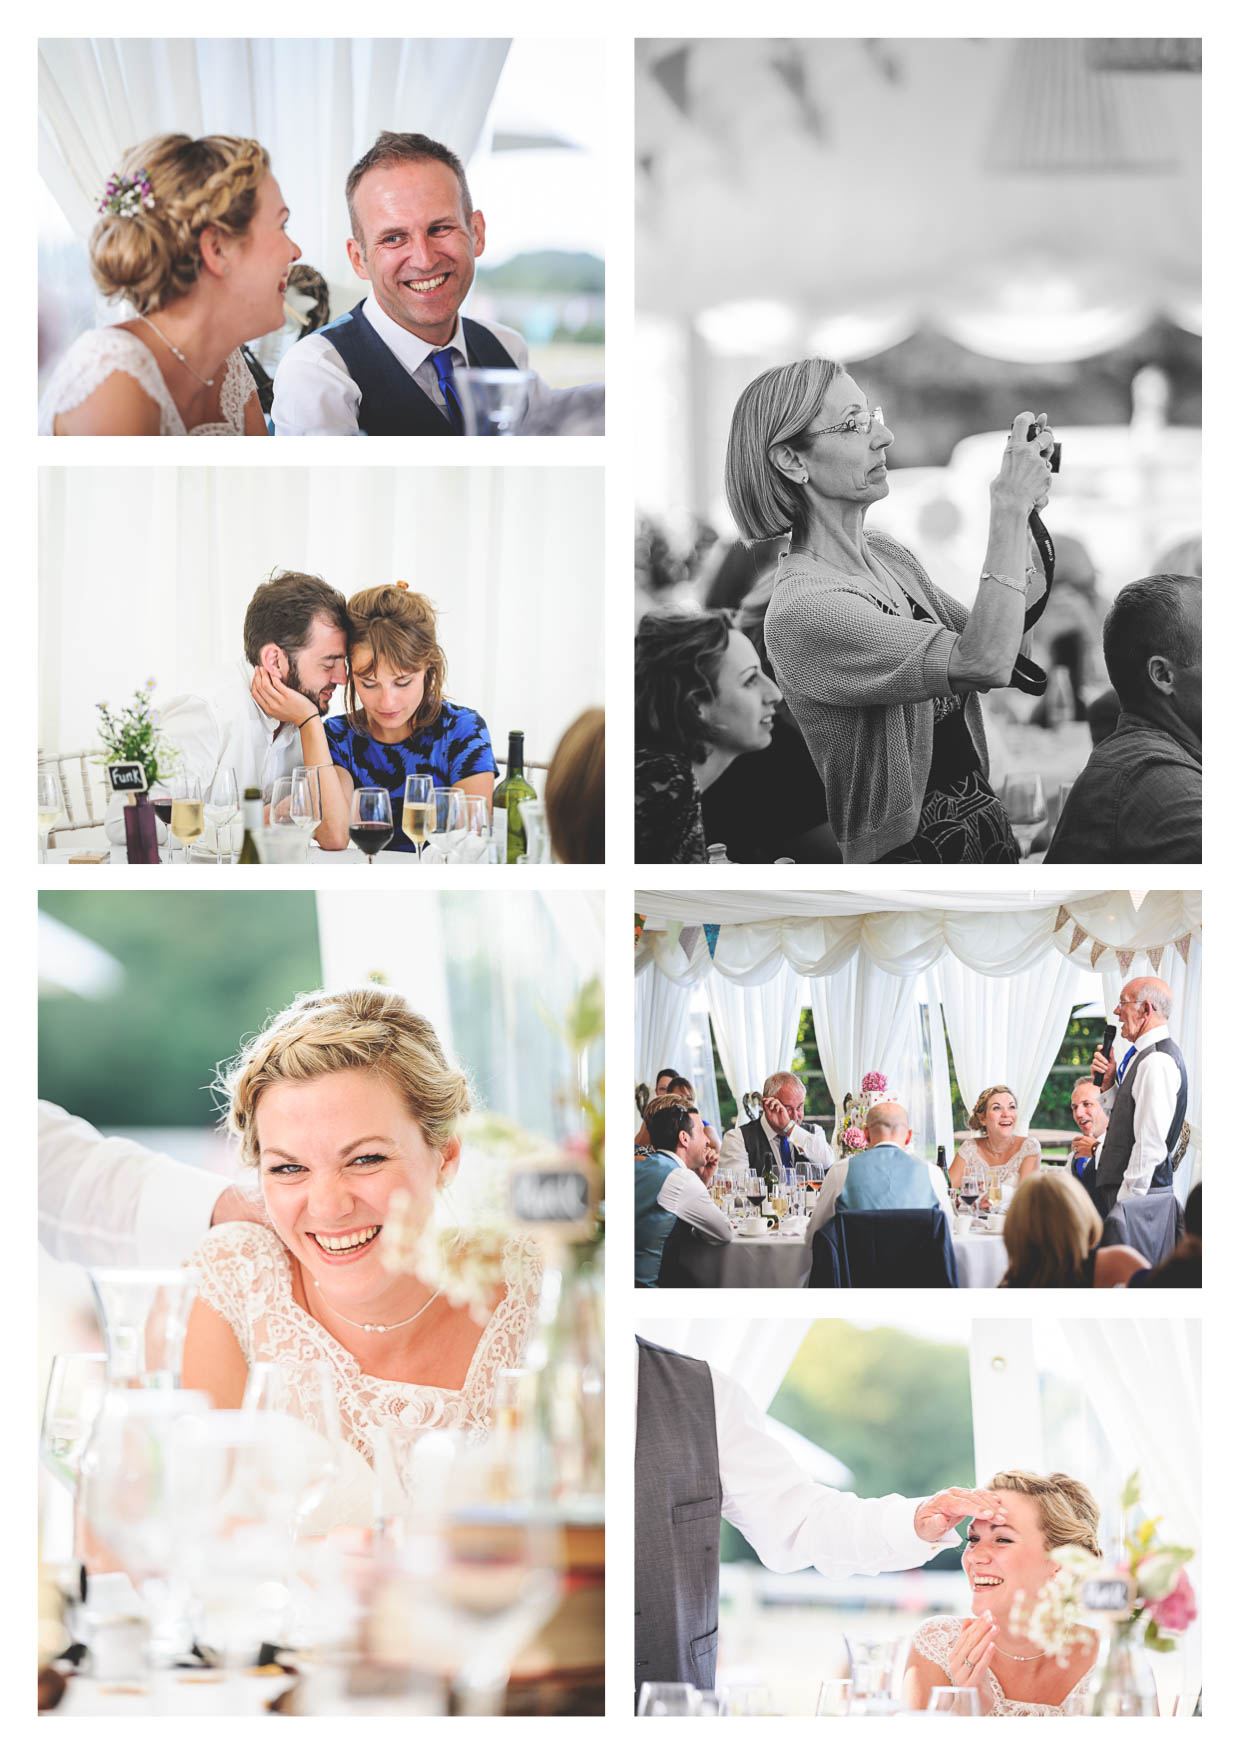 Photographs of the speeches and celebrations within the marquee at llanerch vineyard during a wedding